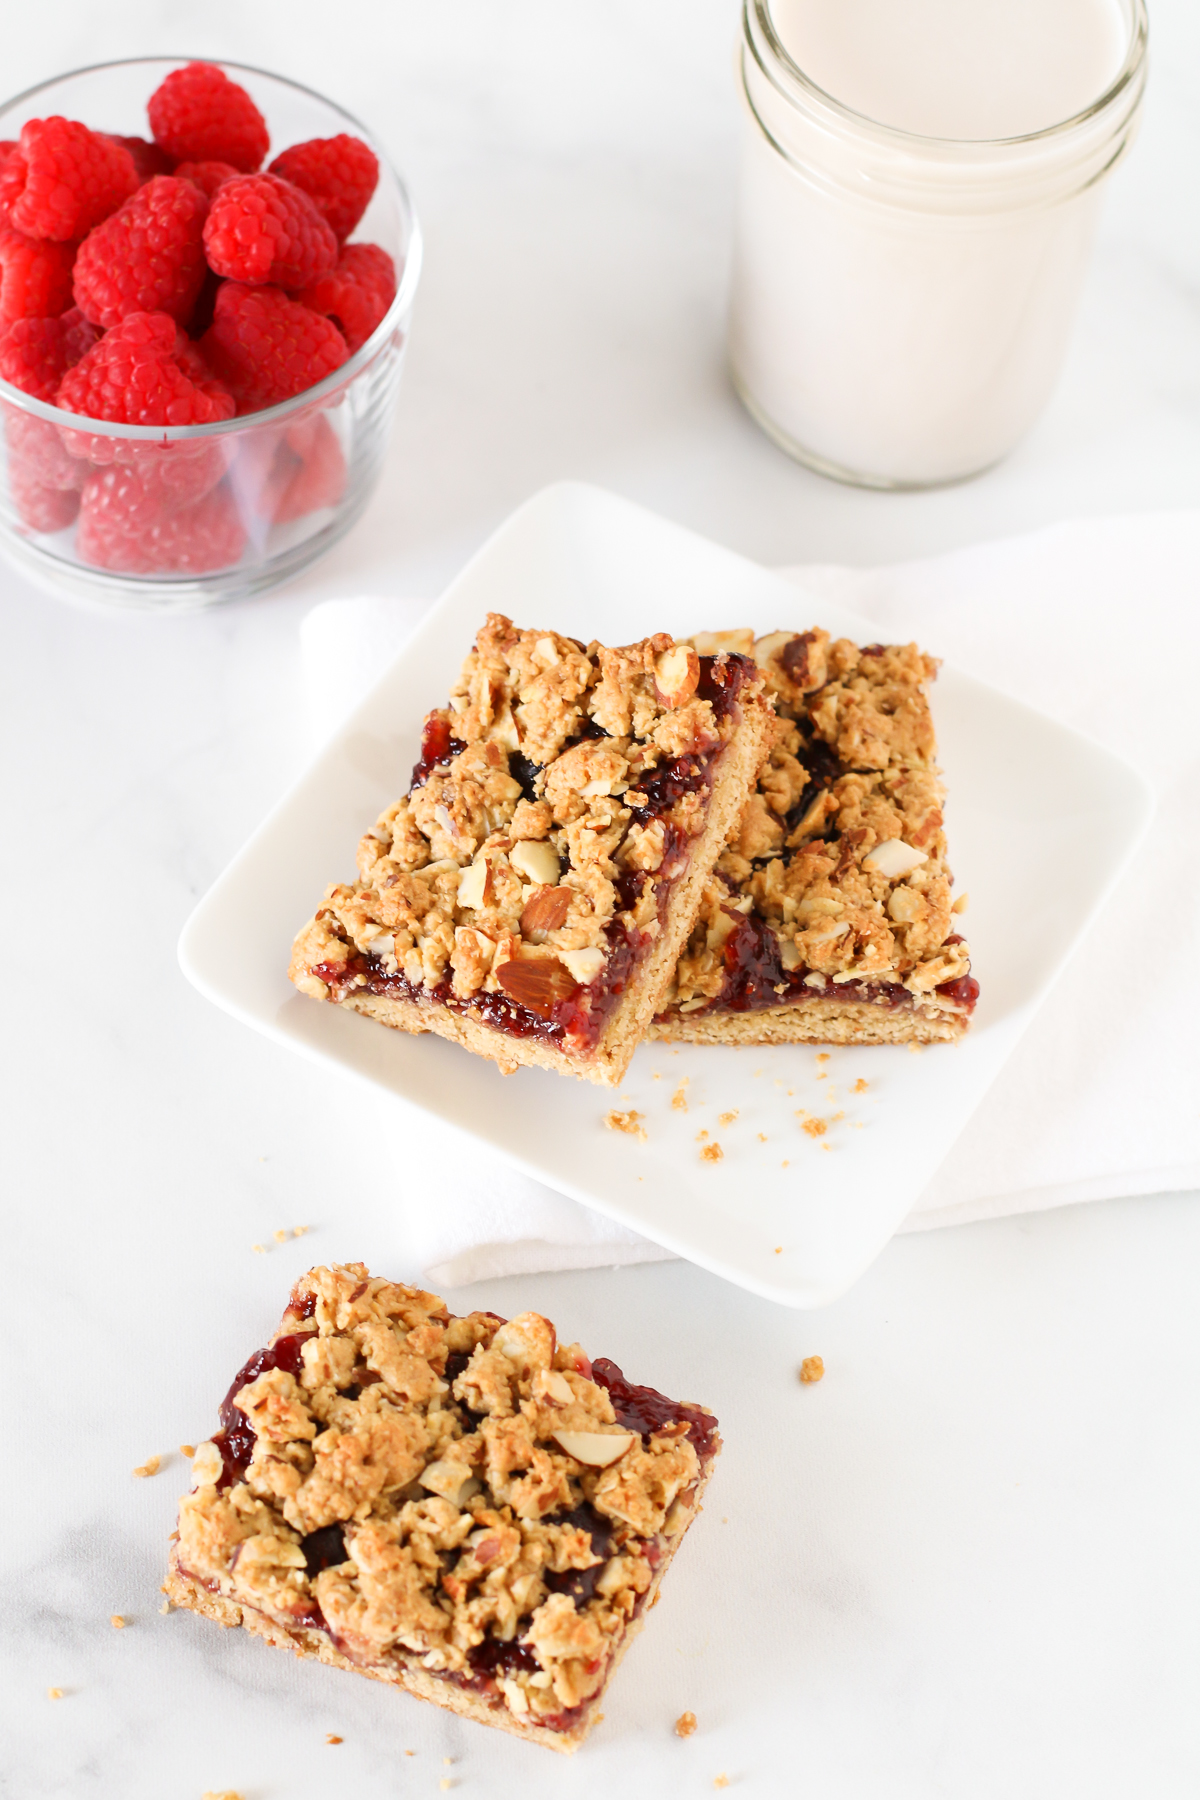 Gluten Free Vegan Raspberry Almond Breakfast Bars. These almond oat bars are slightly sweetened and filled with raspberry jam. A lovely on-the-go breakfast treat.